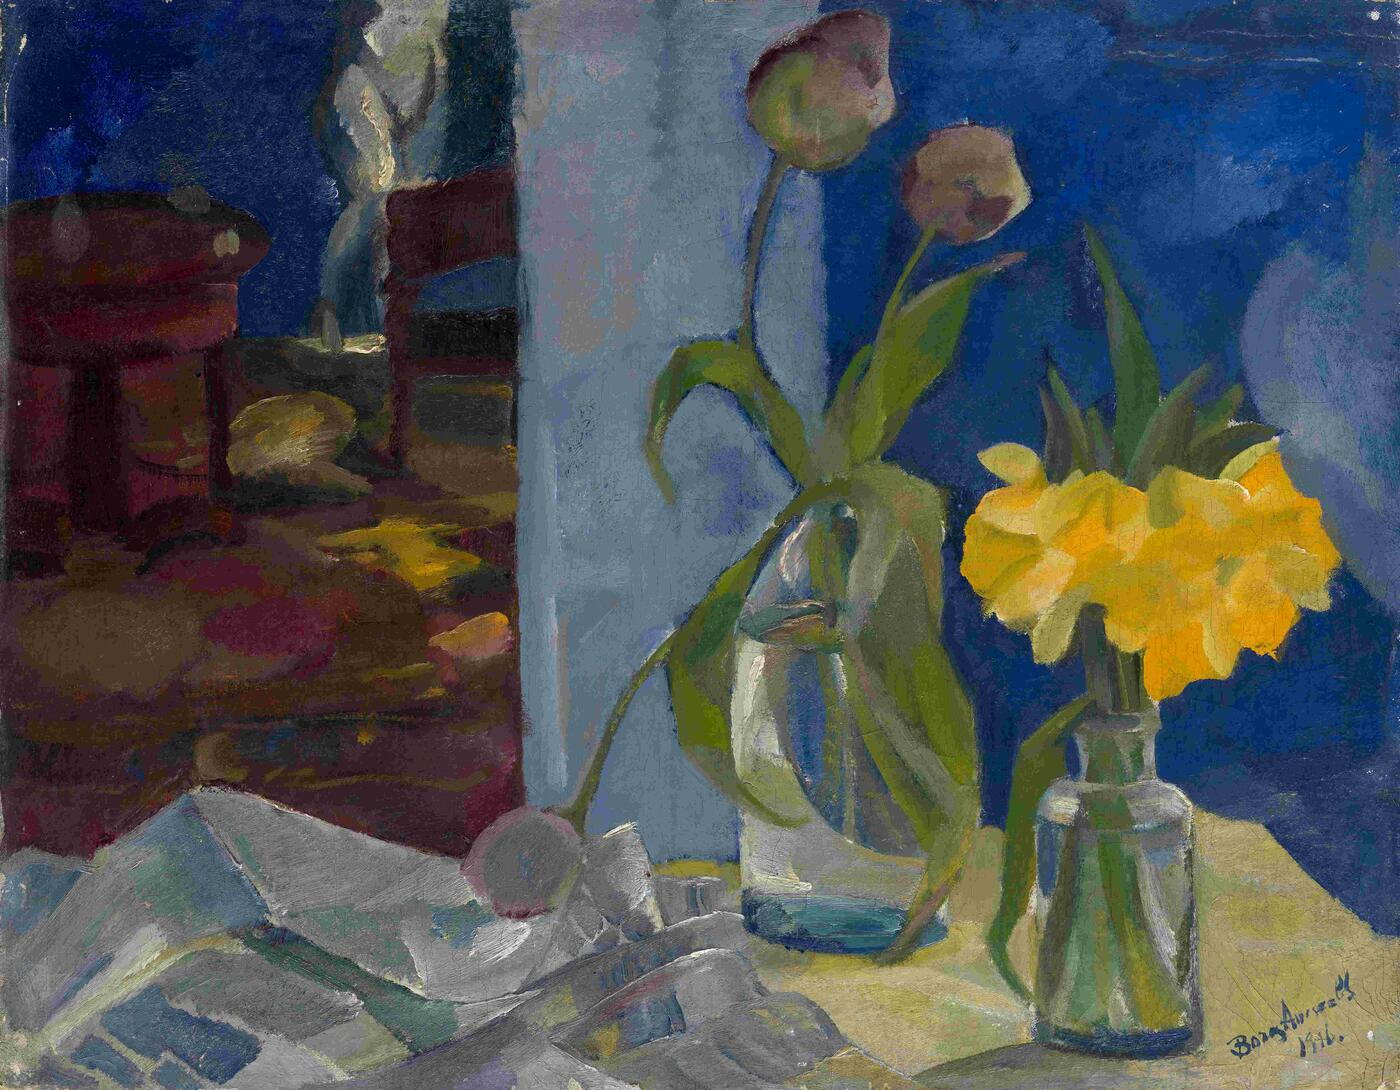 Still Life in Blue Room